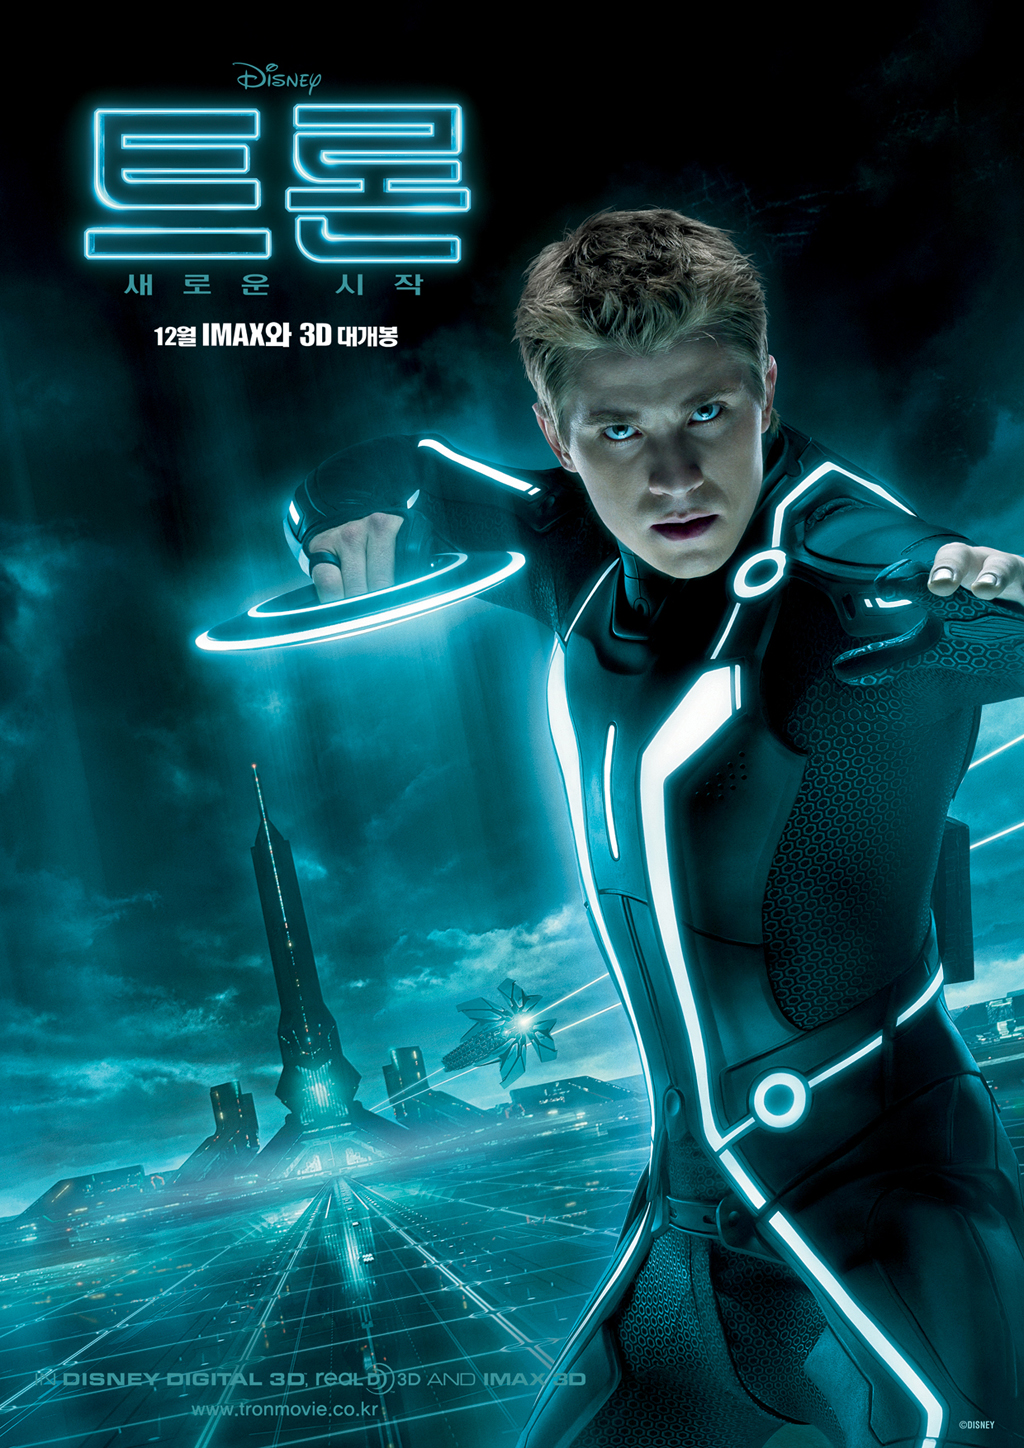 I am not a fanboy but I gotta admit this photo of Garrett Hedlund from Tron ...